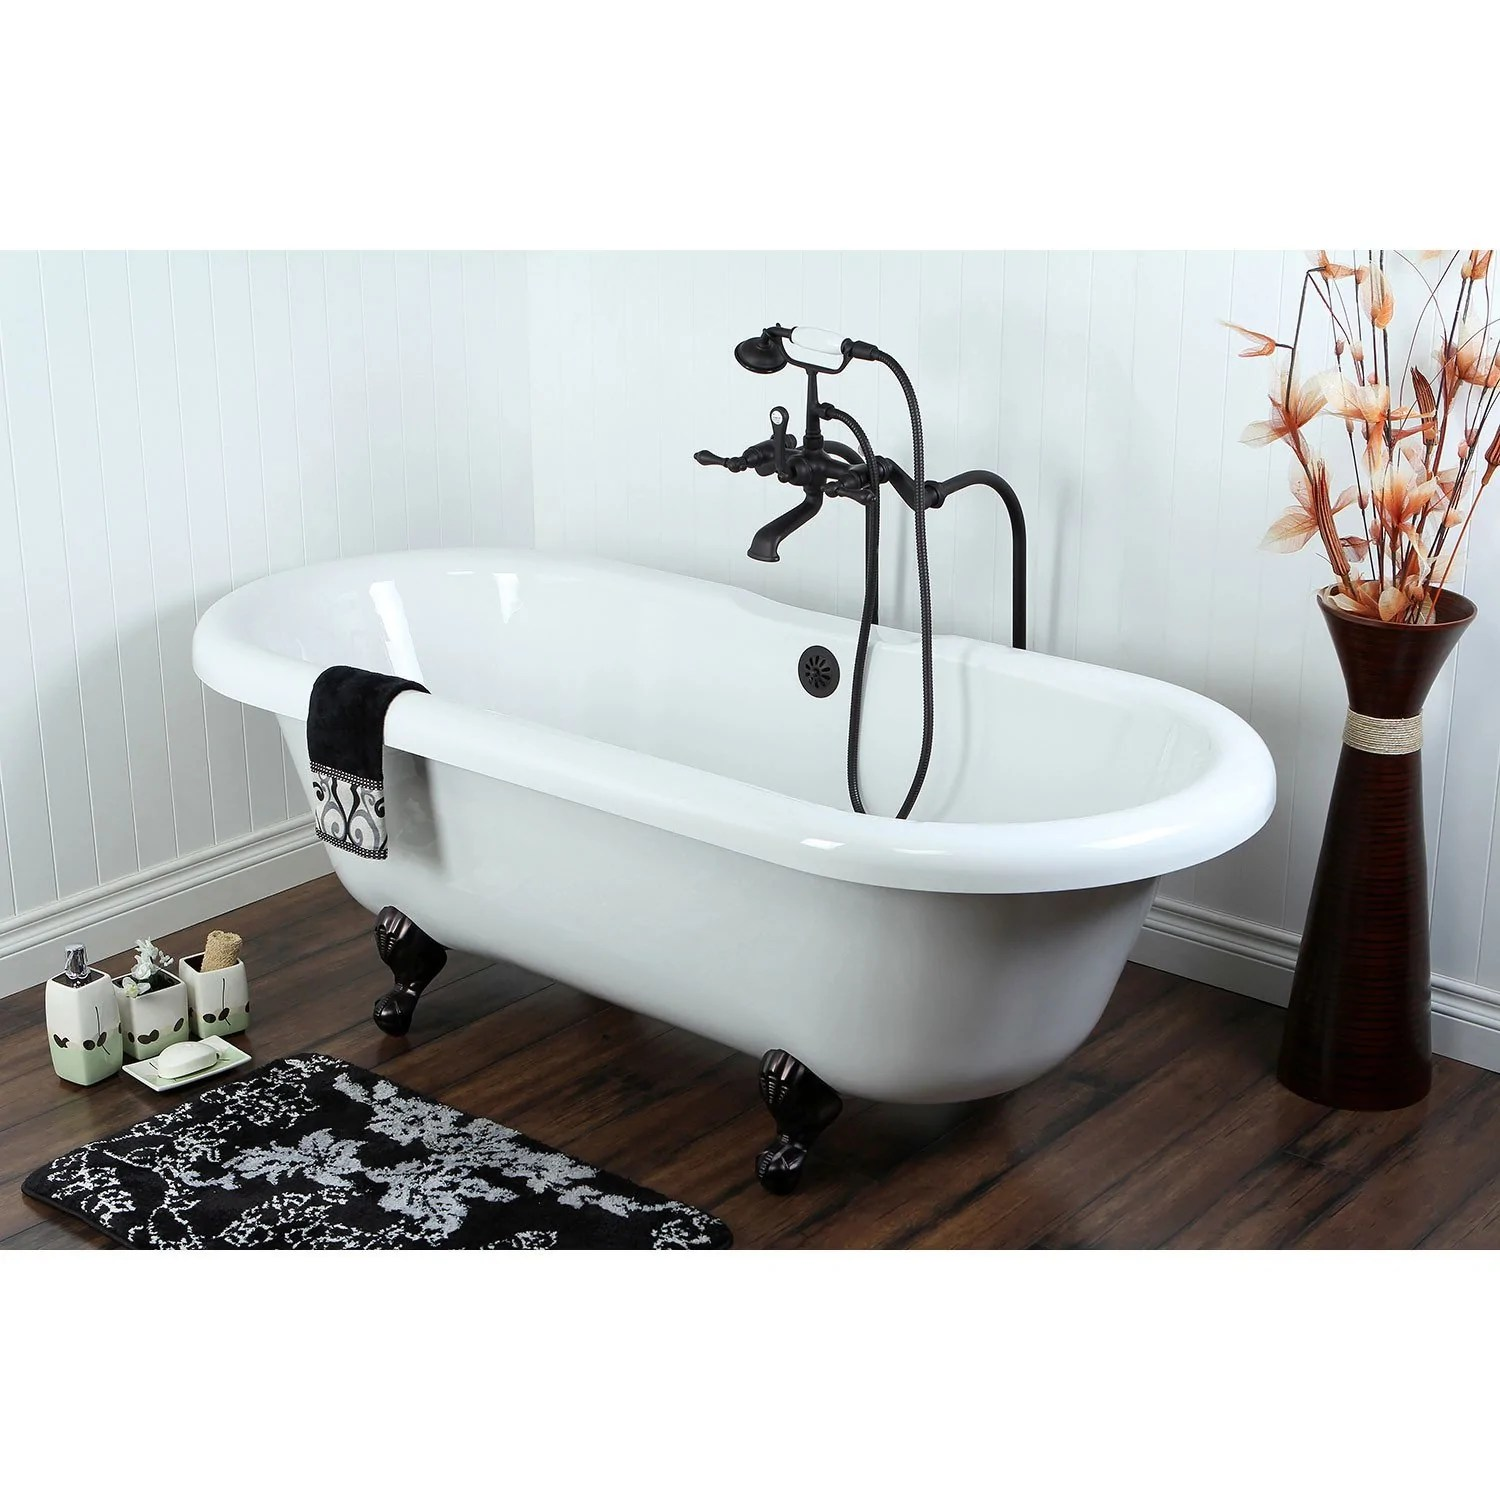 67 clawfoot tub with freestanding oil rubbed bronze tub faucet package ctp55